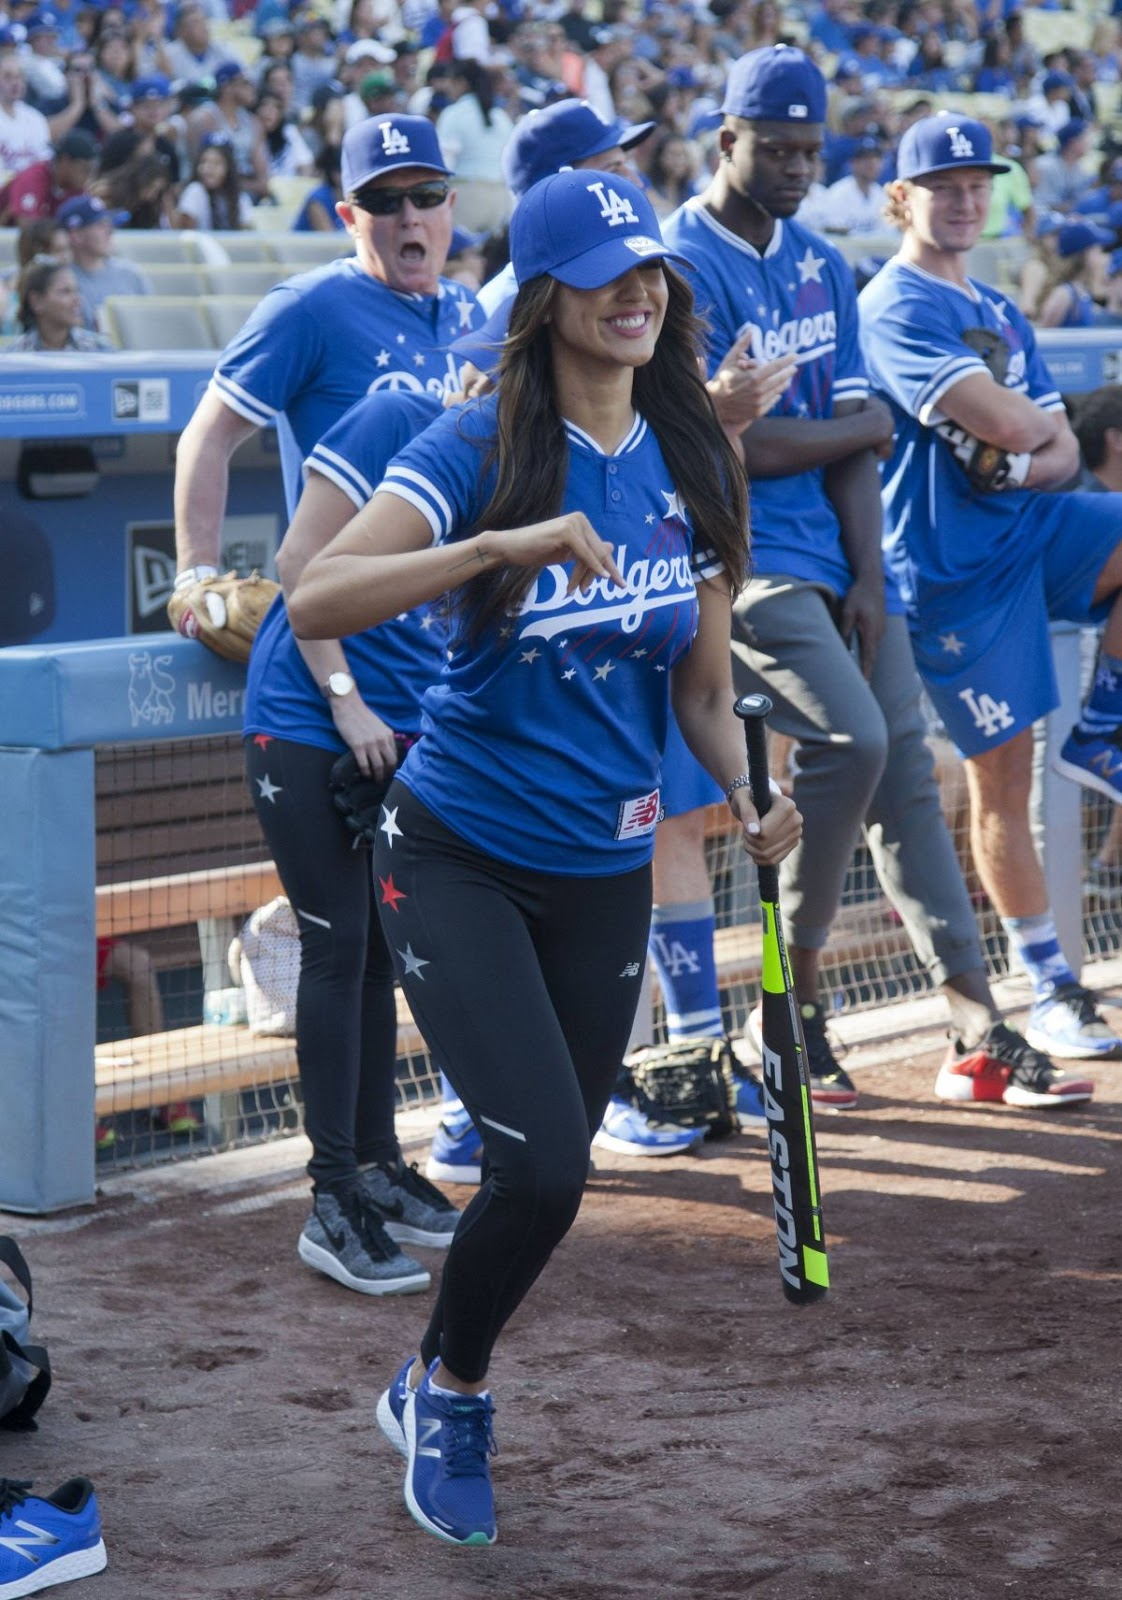 Full HQ Photos of Sexy Eiza Gonzalez at Hollywood Stars Game Dodger Stadium in Los Angeles